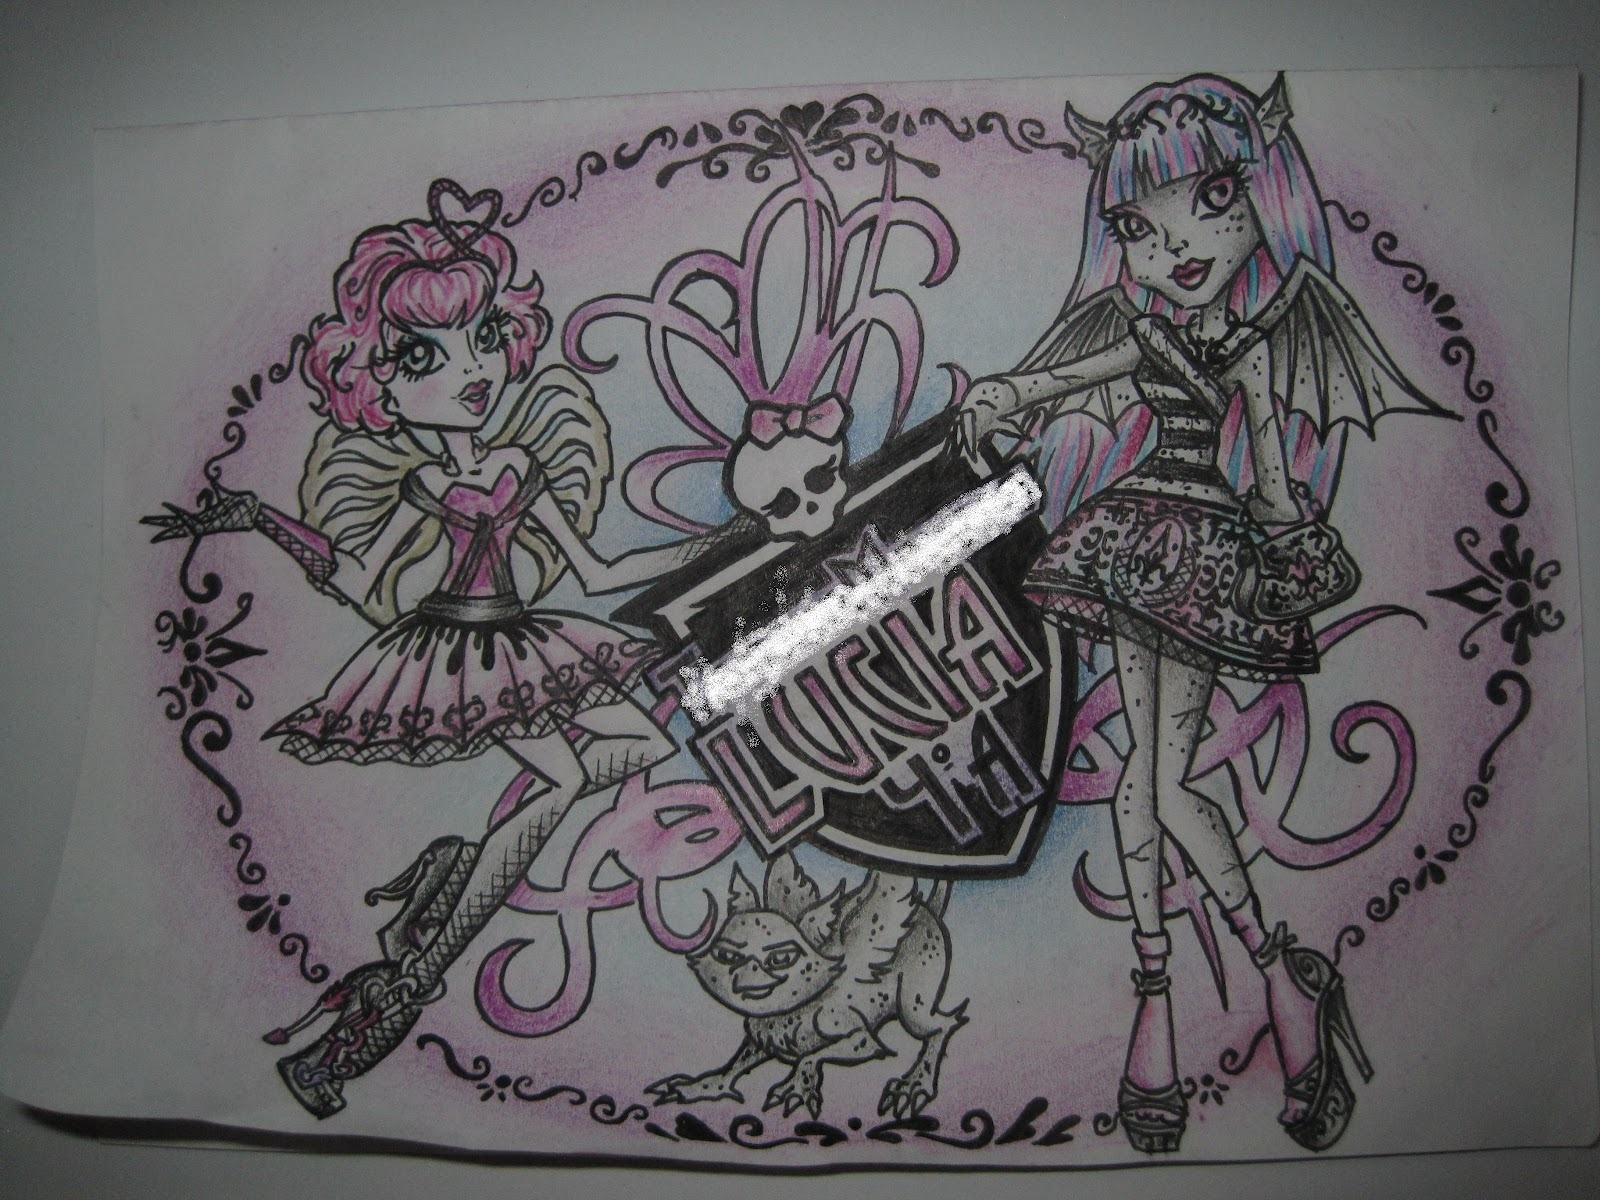 Monster High Libros Creando Pegatinas Para Libros De Monster High